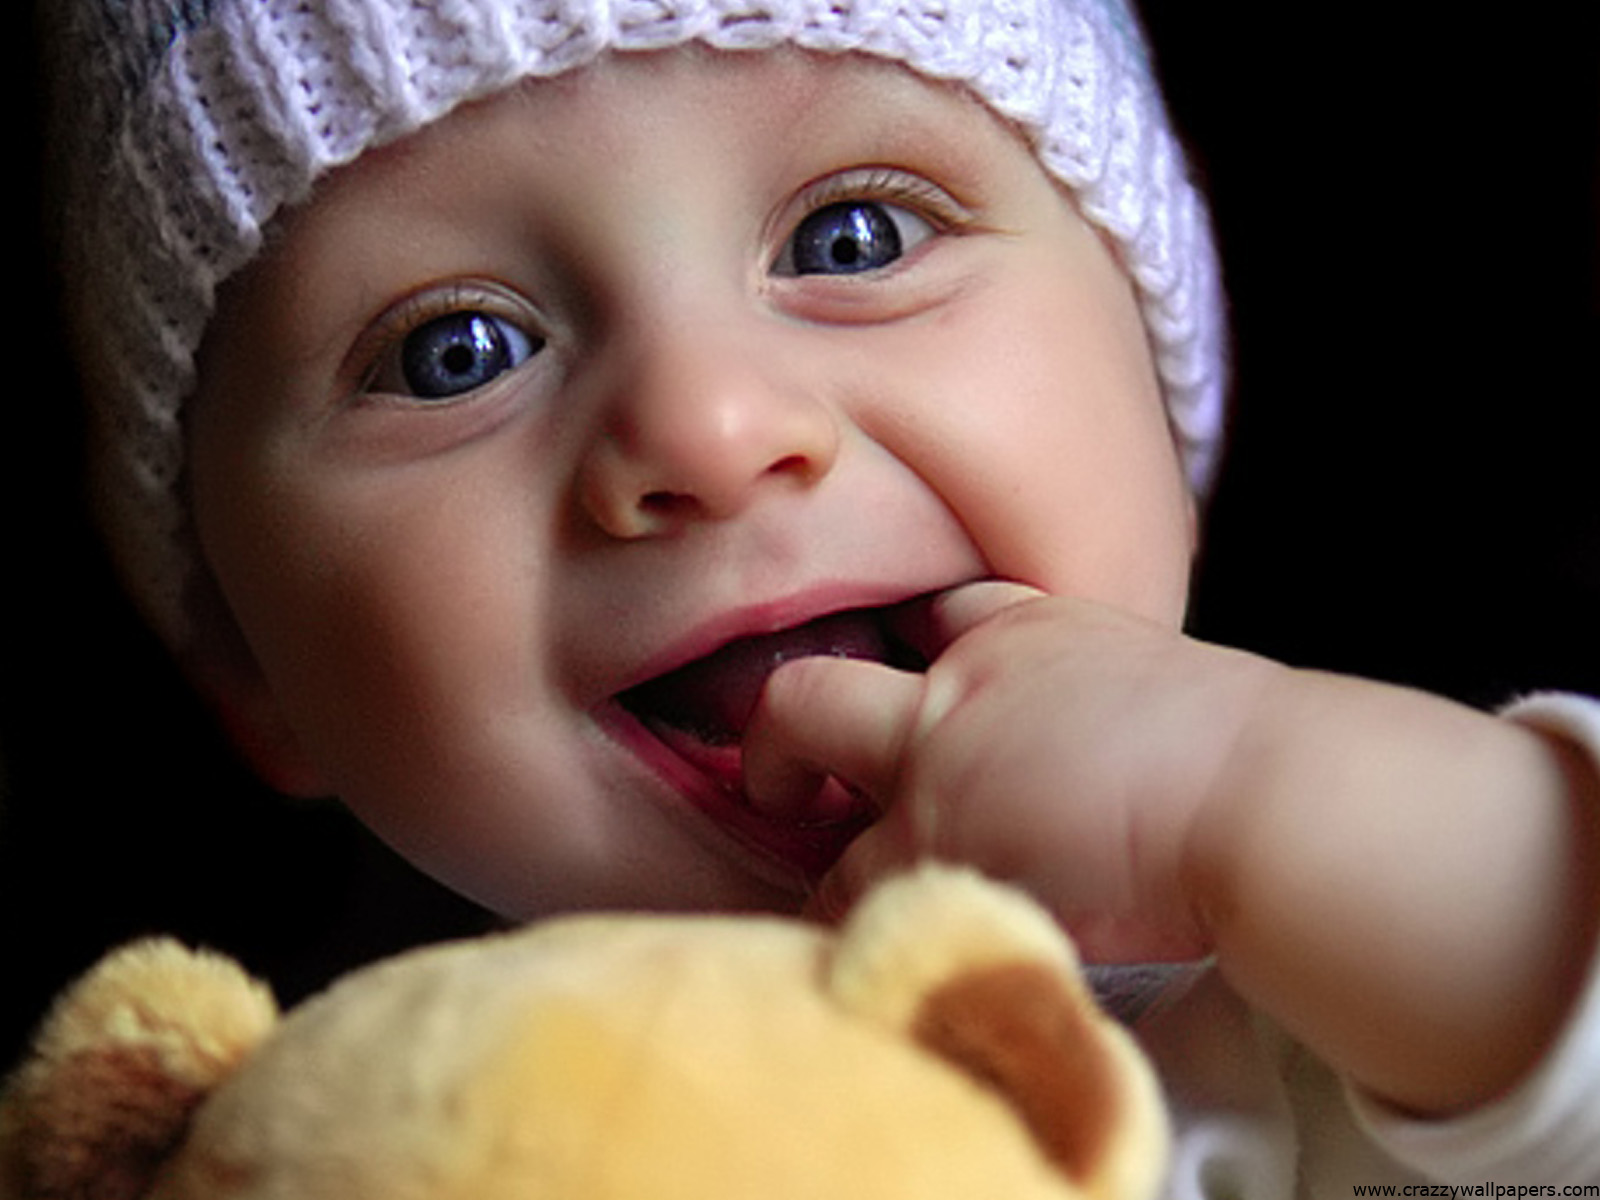 New Cute Baby Playing Doll Best Wallpaper HD Desktop #1776   Just Wallpaper